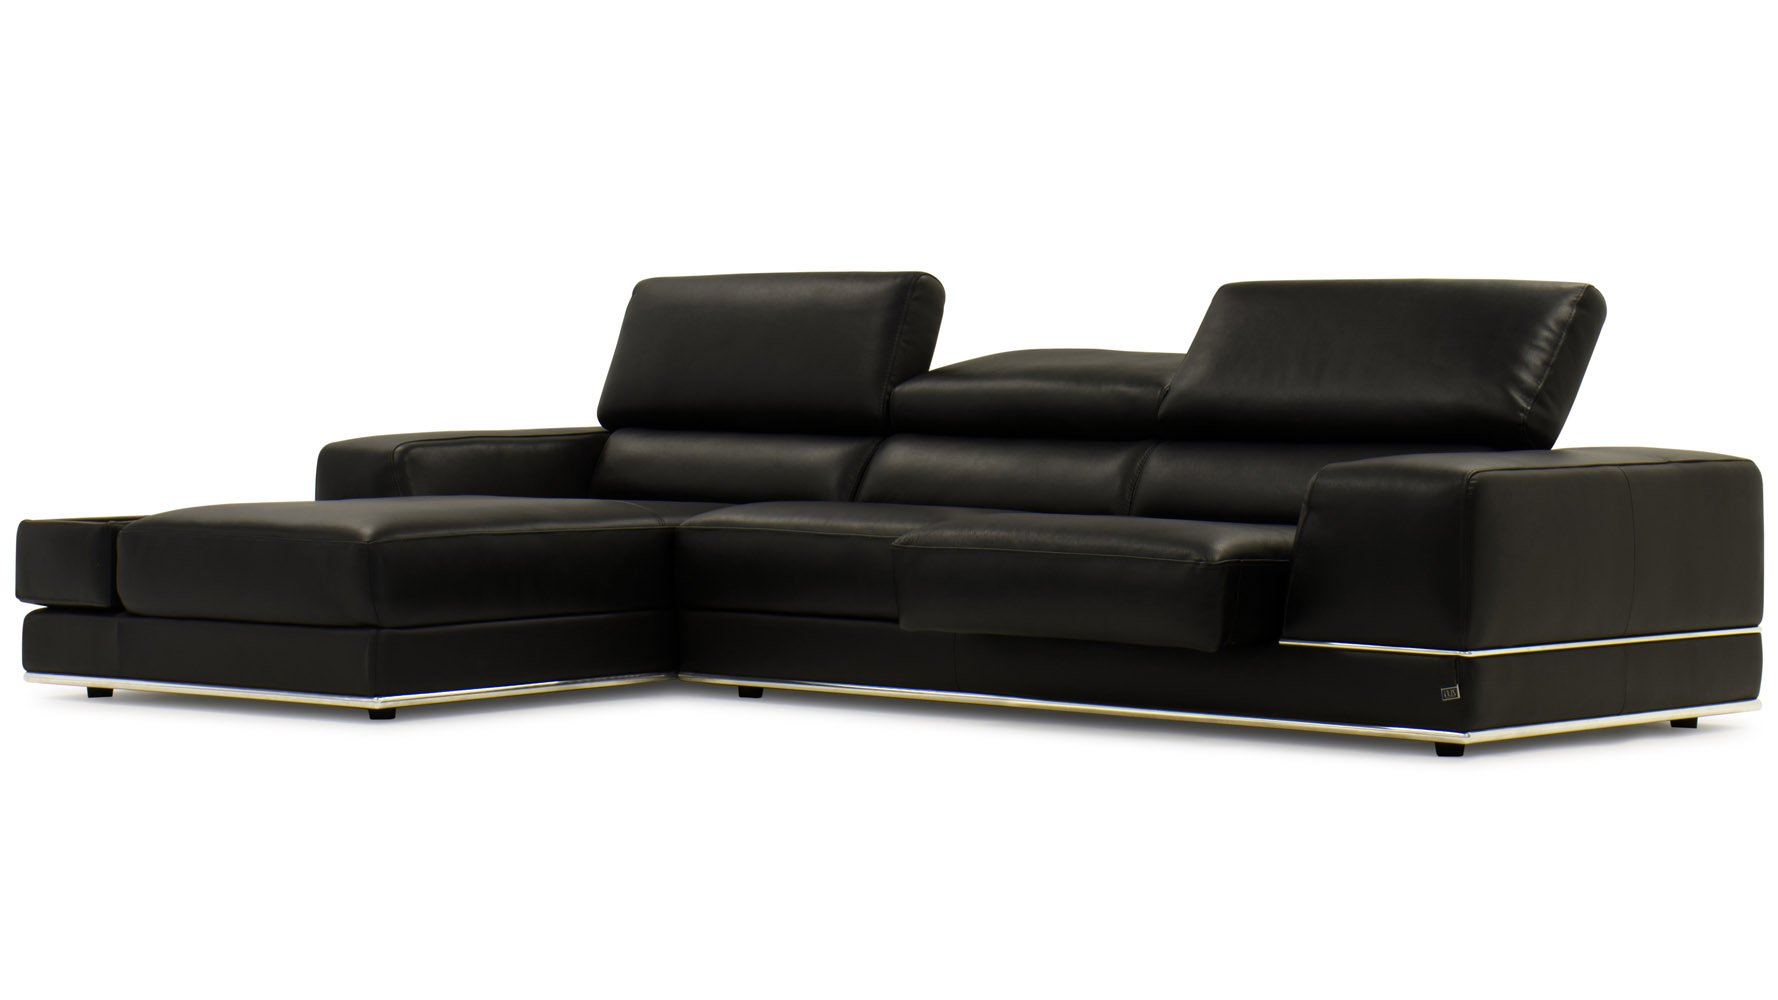 corner of with leather sectional sofas large radley black reclining modern sofa piece couch full chaise grey size